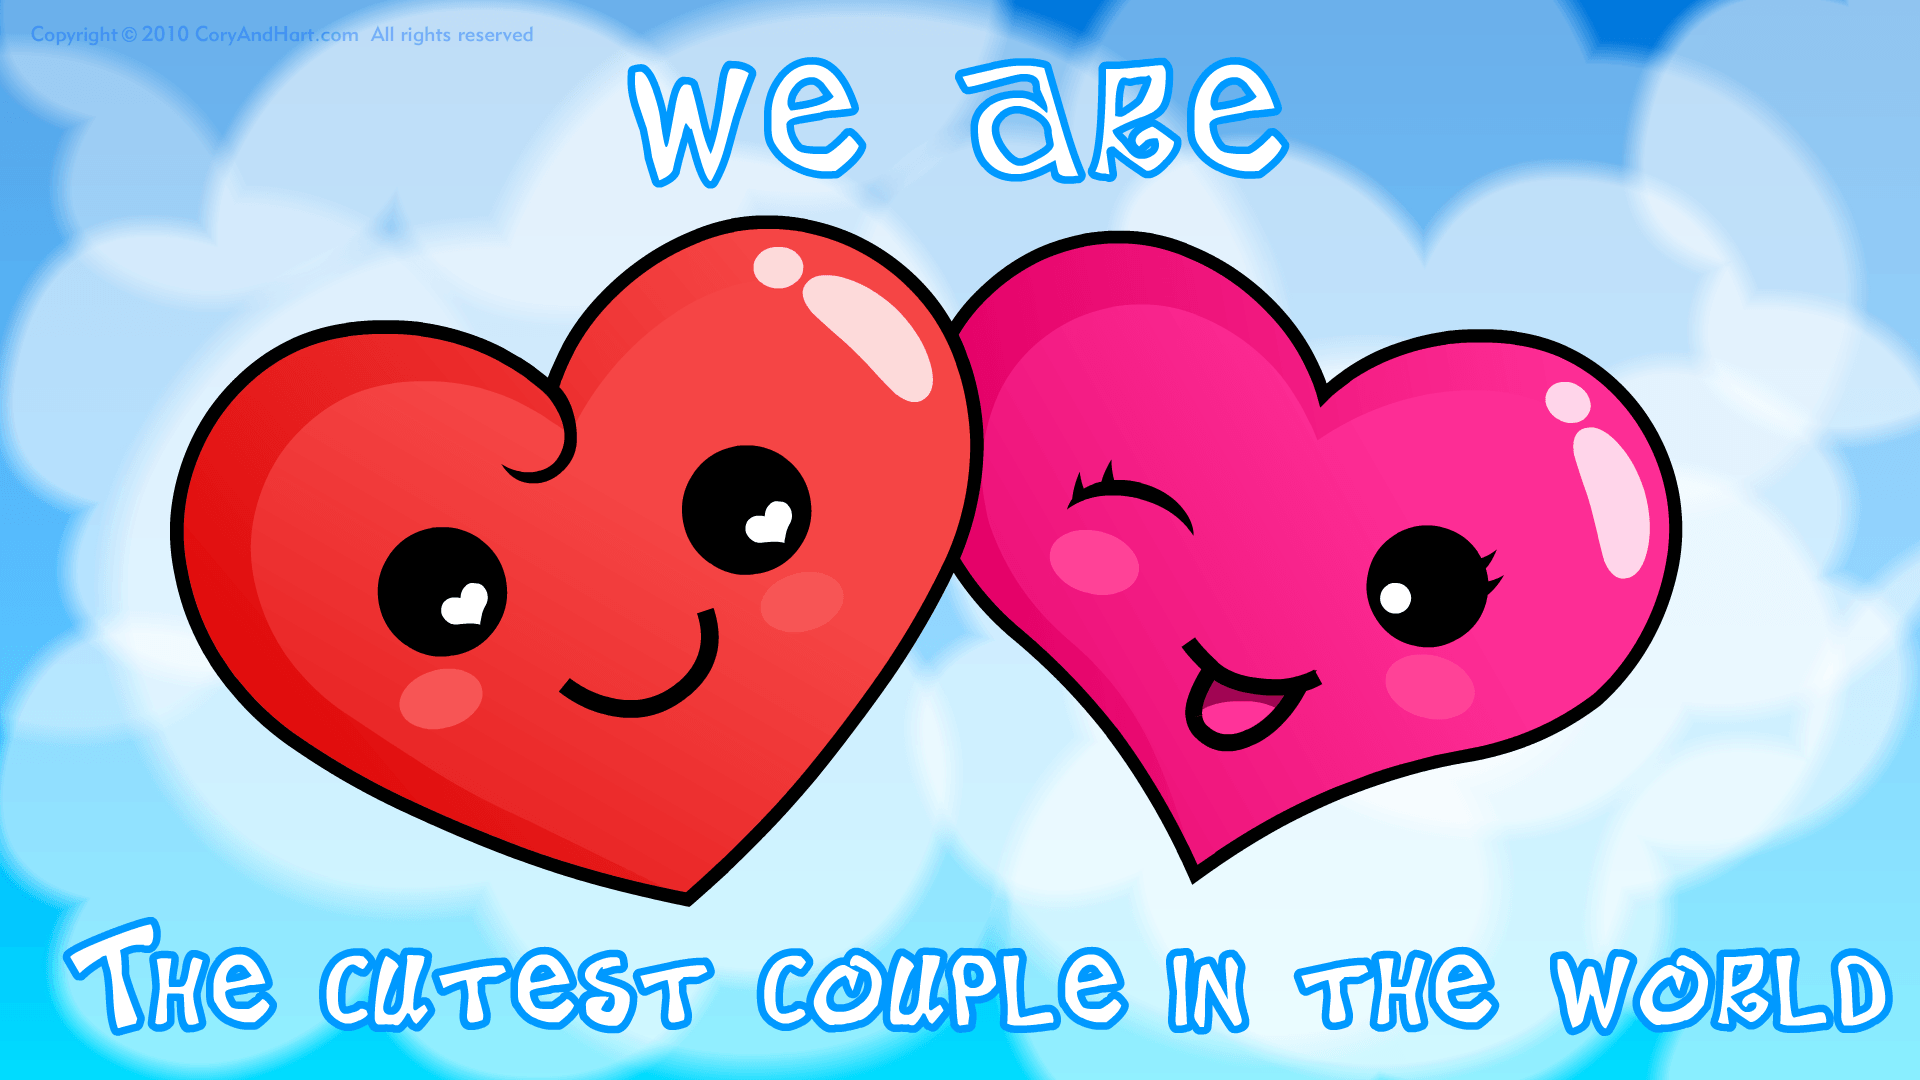 cute Love couple Hd Wallpaper For Mobile : Free Love Wallpapers Gallery - Wallpaper cave